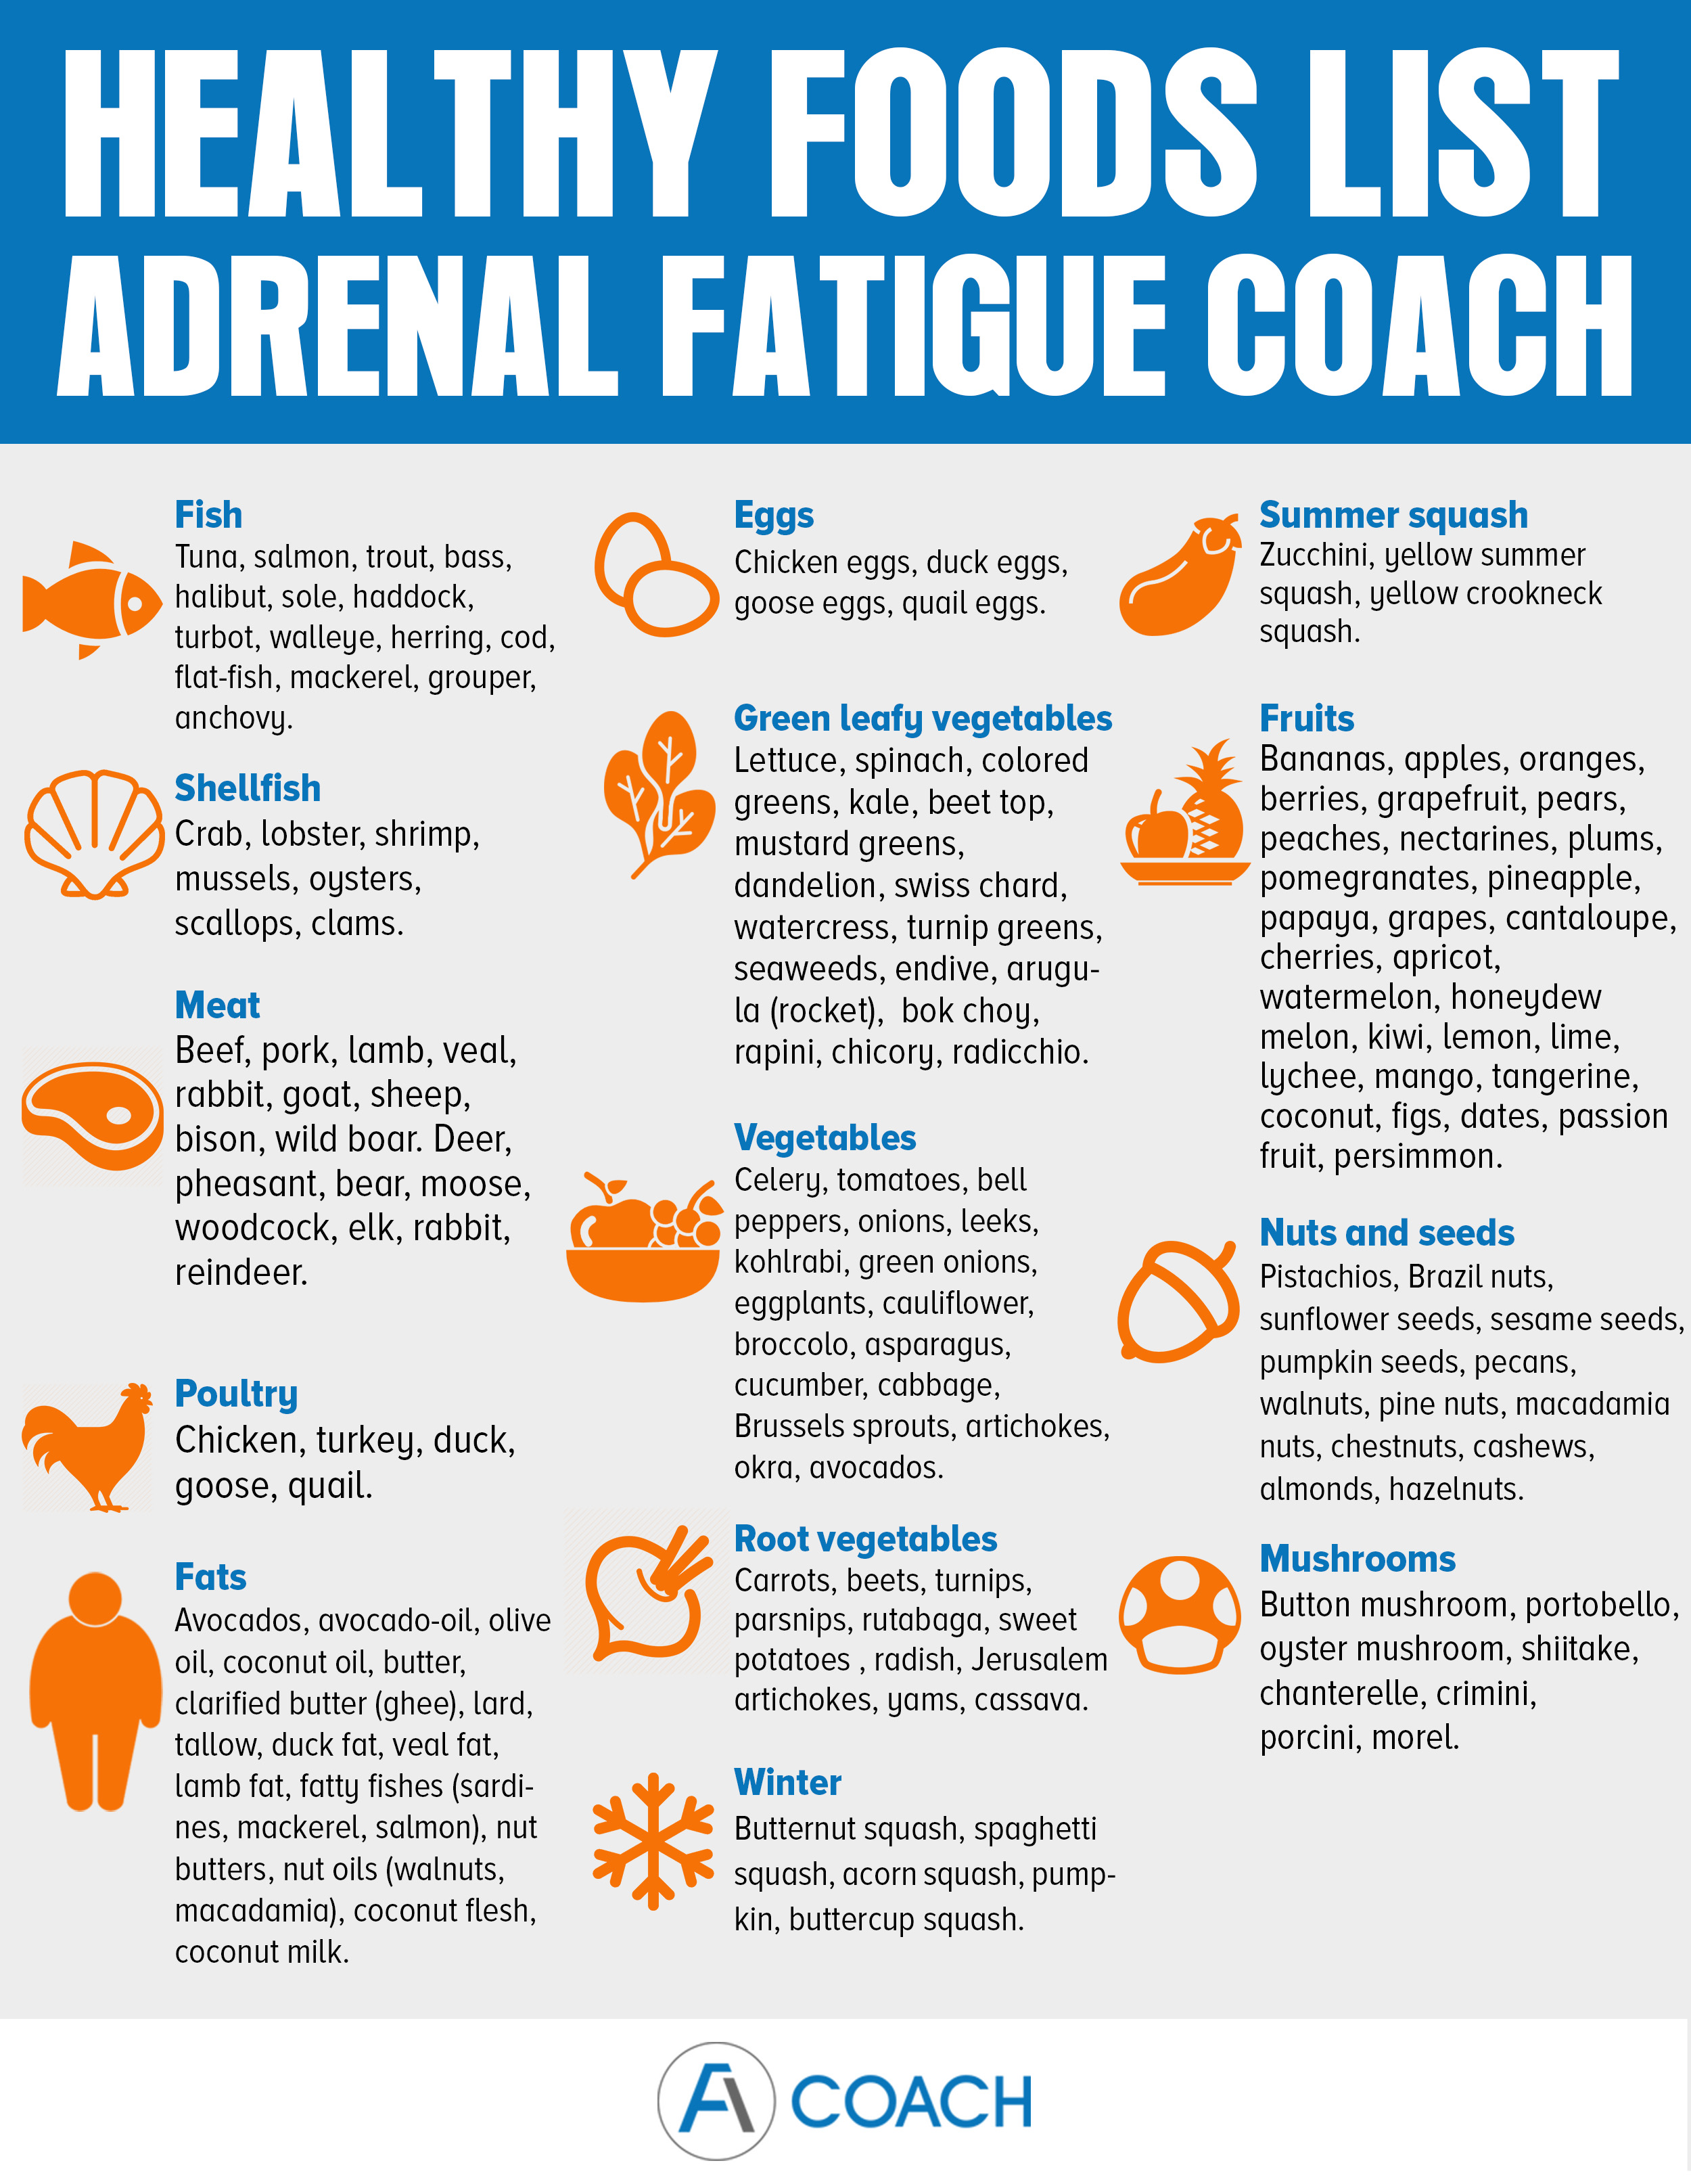 Do You Have Adrenal Fatigue, Or Is It Perimenopause